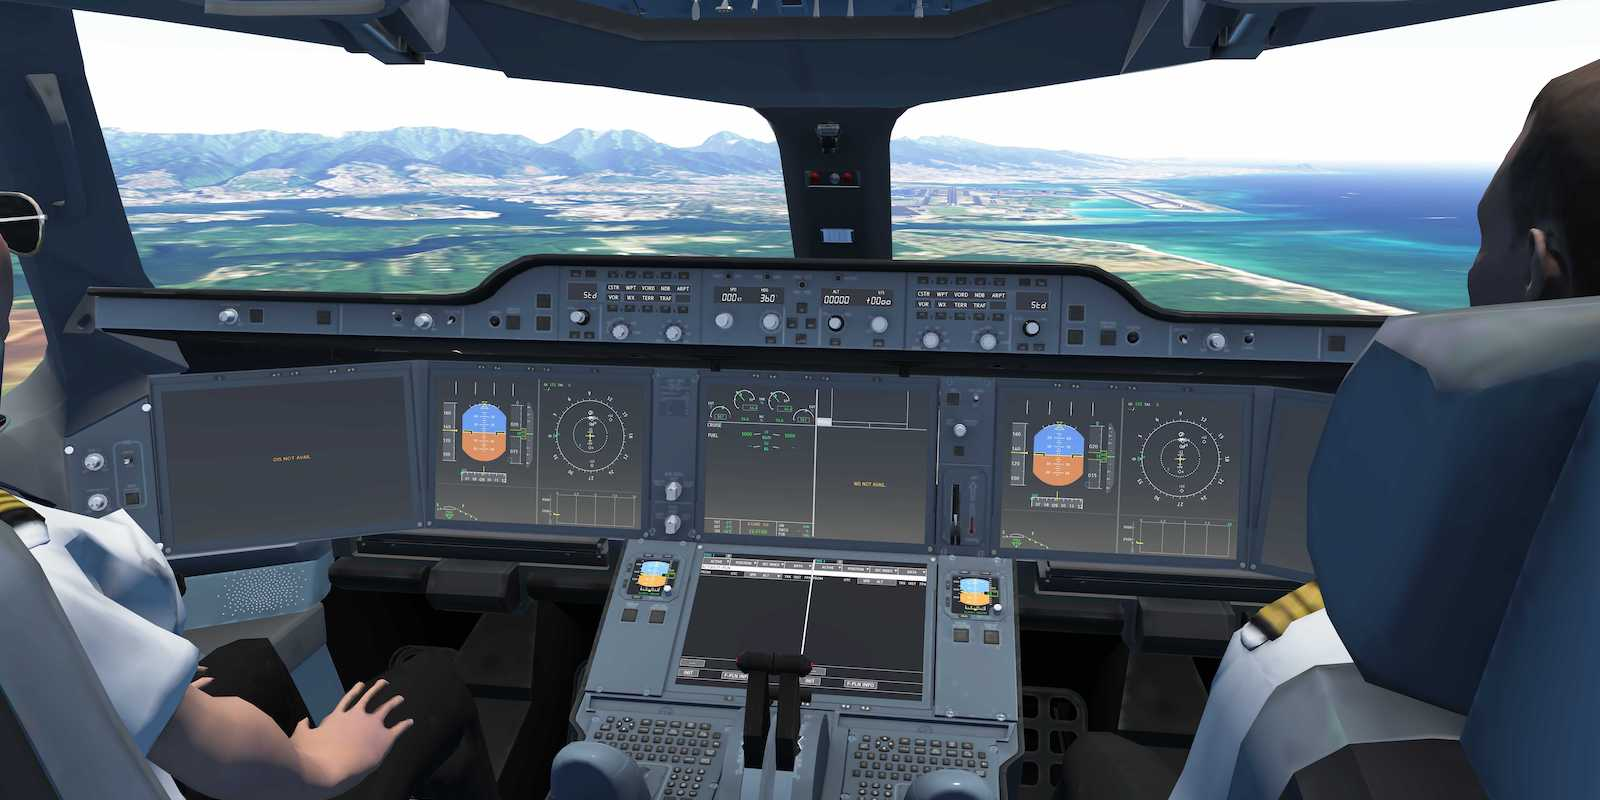 New Speed Control on Approach